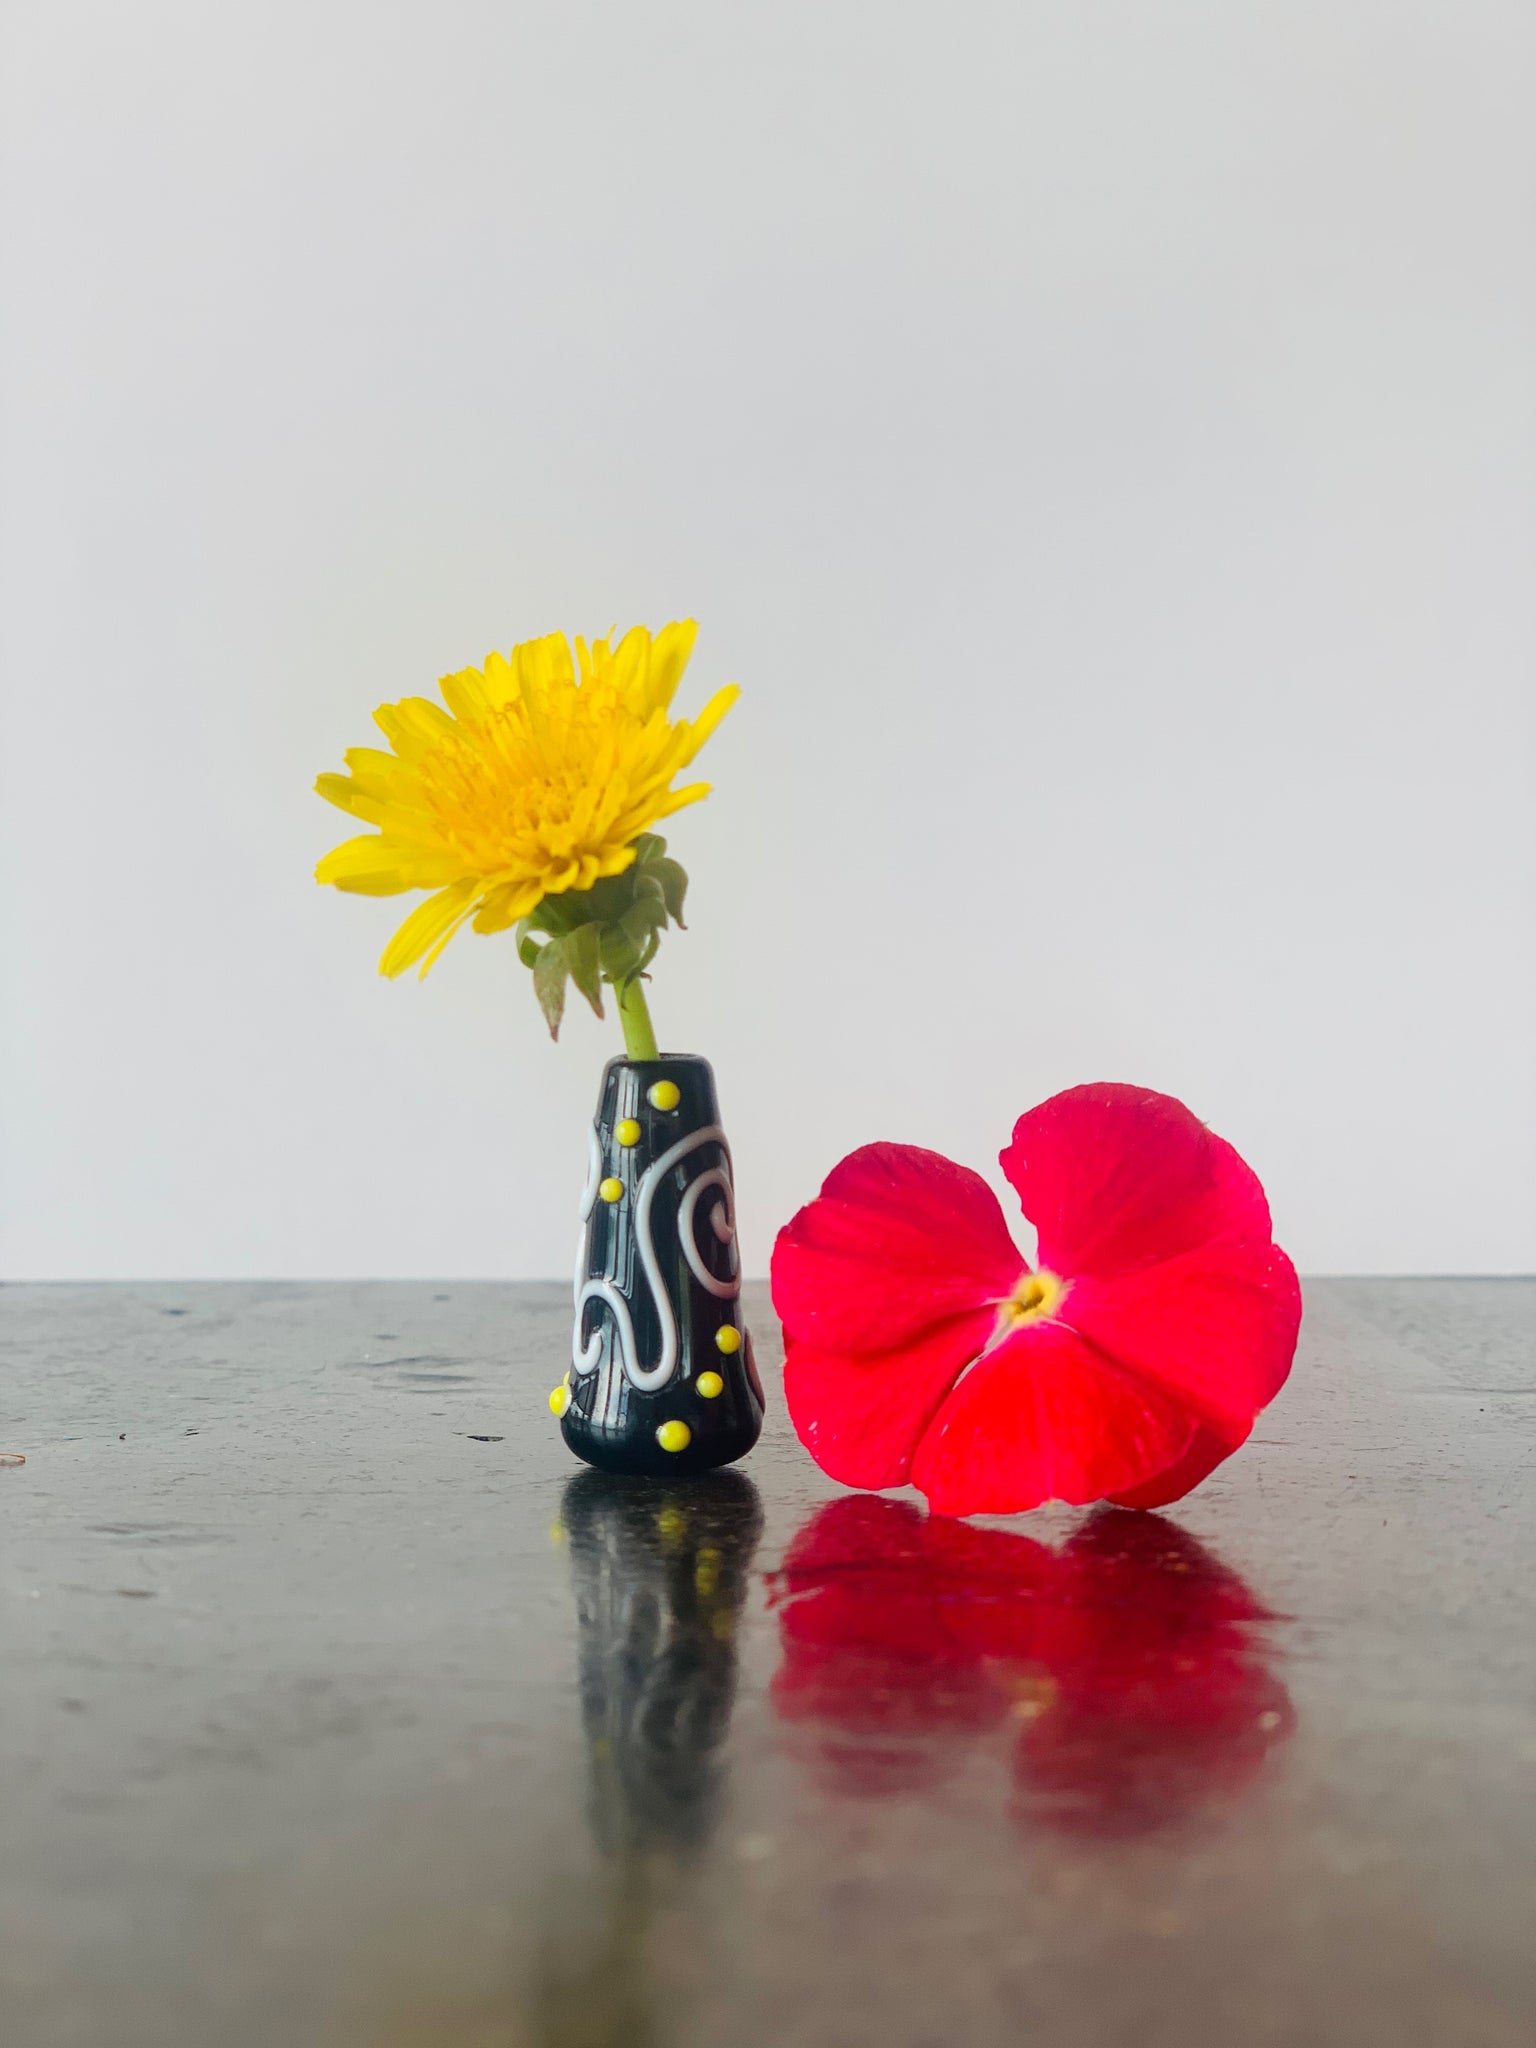 Custom Dandelion Vase - Black, White and Yellow Polka Dots